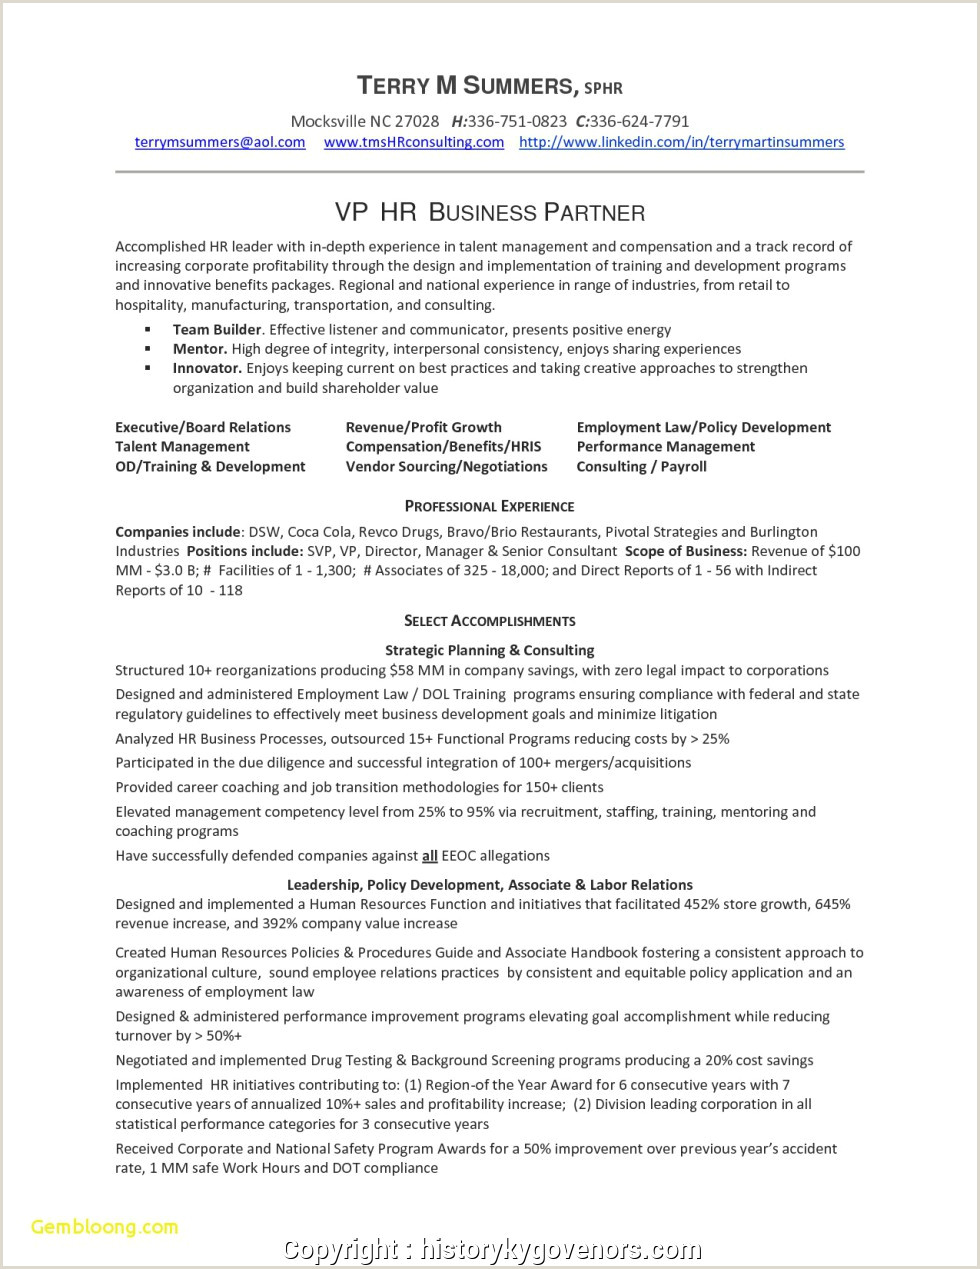 Latest Cv format for Hr Human Resources Business Partner Resume Examples Awesome